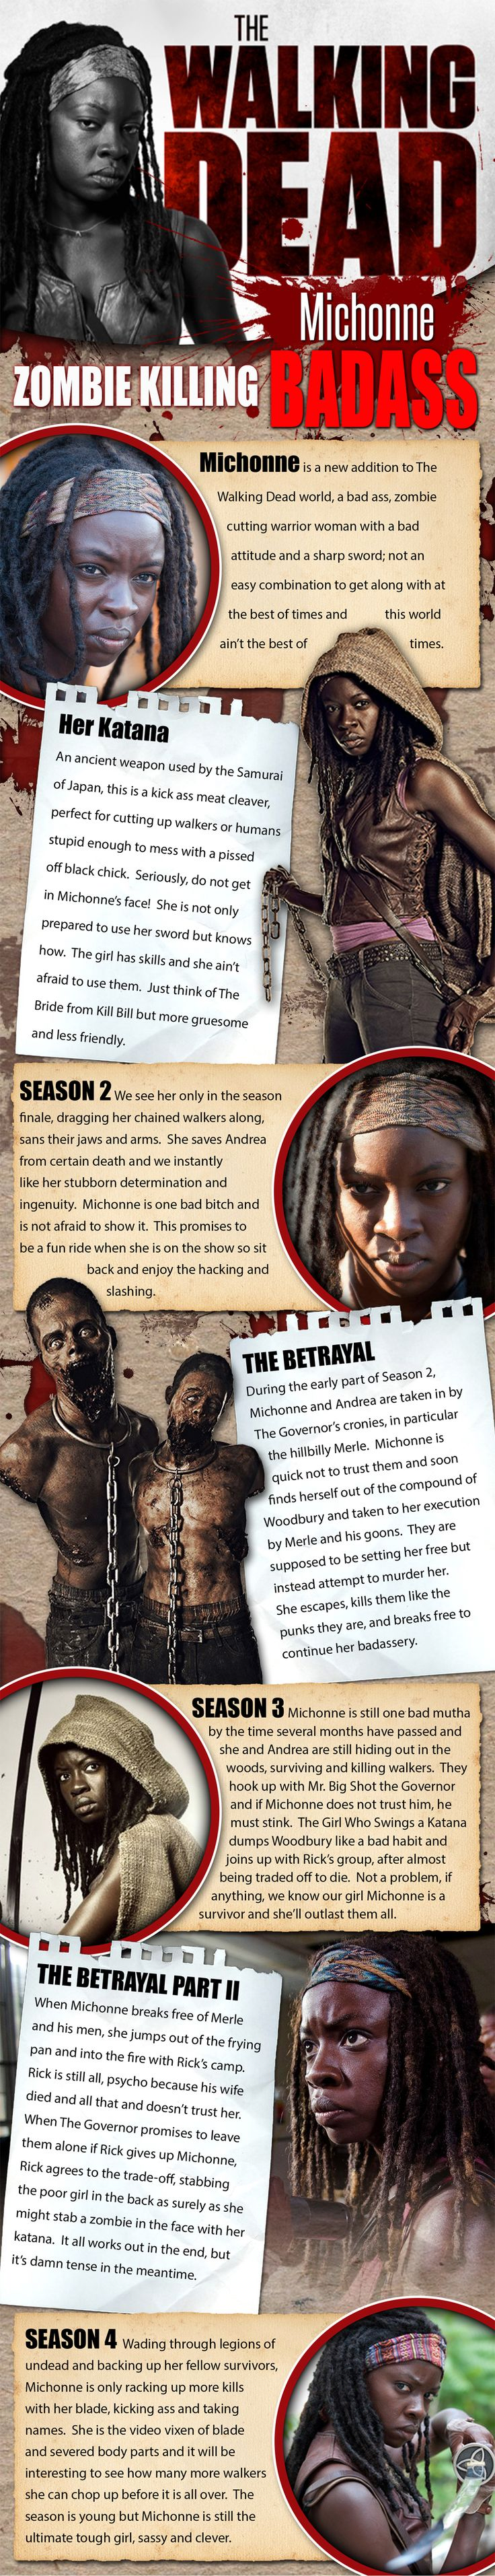 Michonne - The Walking Dead - On AMC's The Walking Dead, the smash hit series about zombies taking over the world, Michonne is just such a character to shake things up a bit. I remember seeing the preview for the 3rd season and there was this woman with t